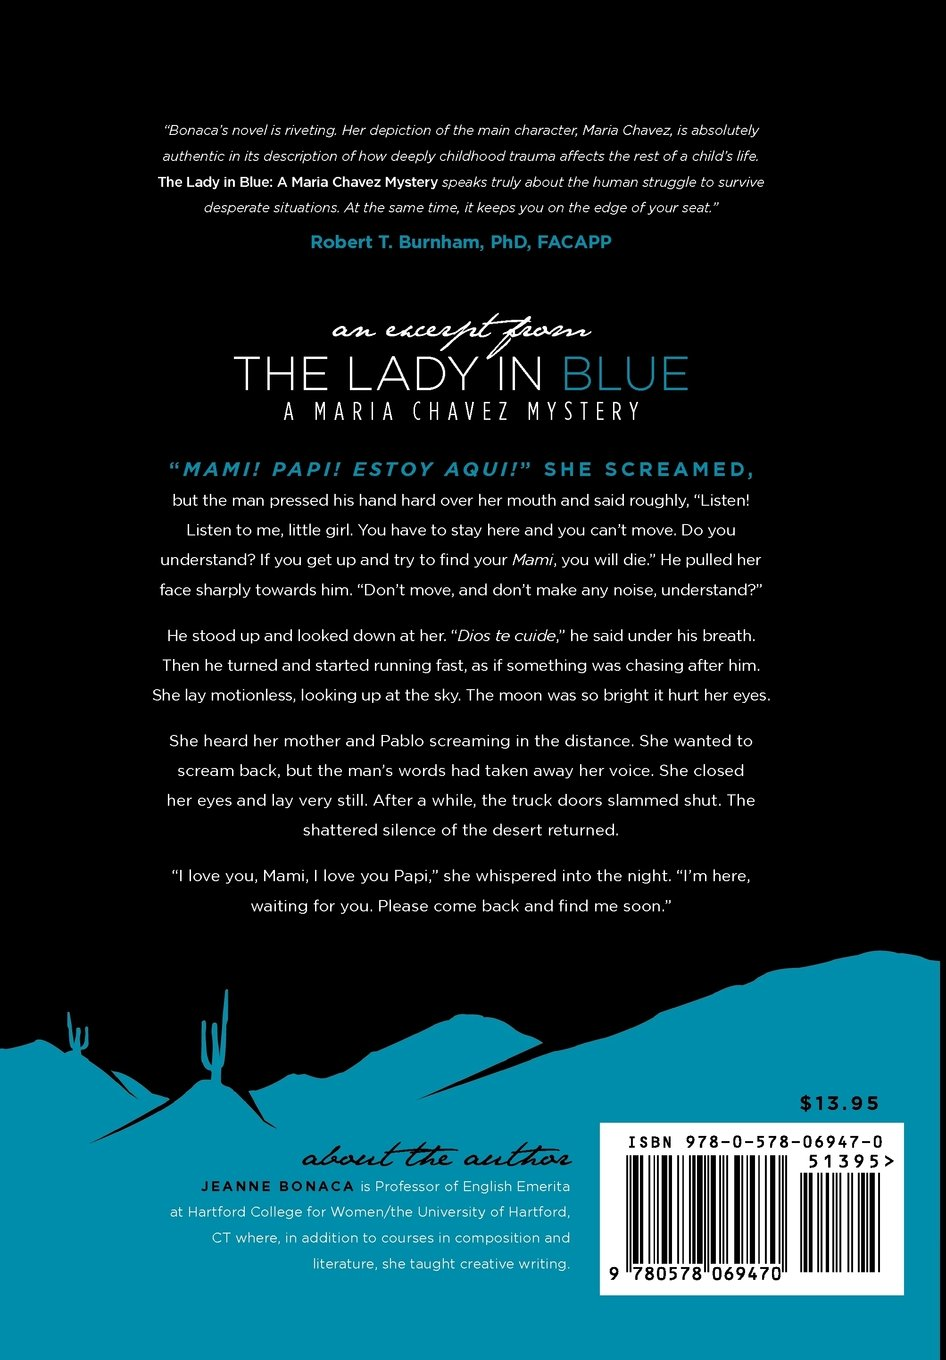 The Lady in Blue: A Maria Chavez Mystery